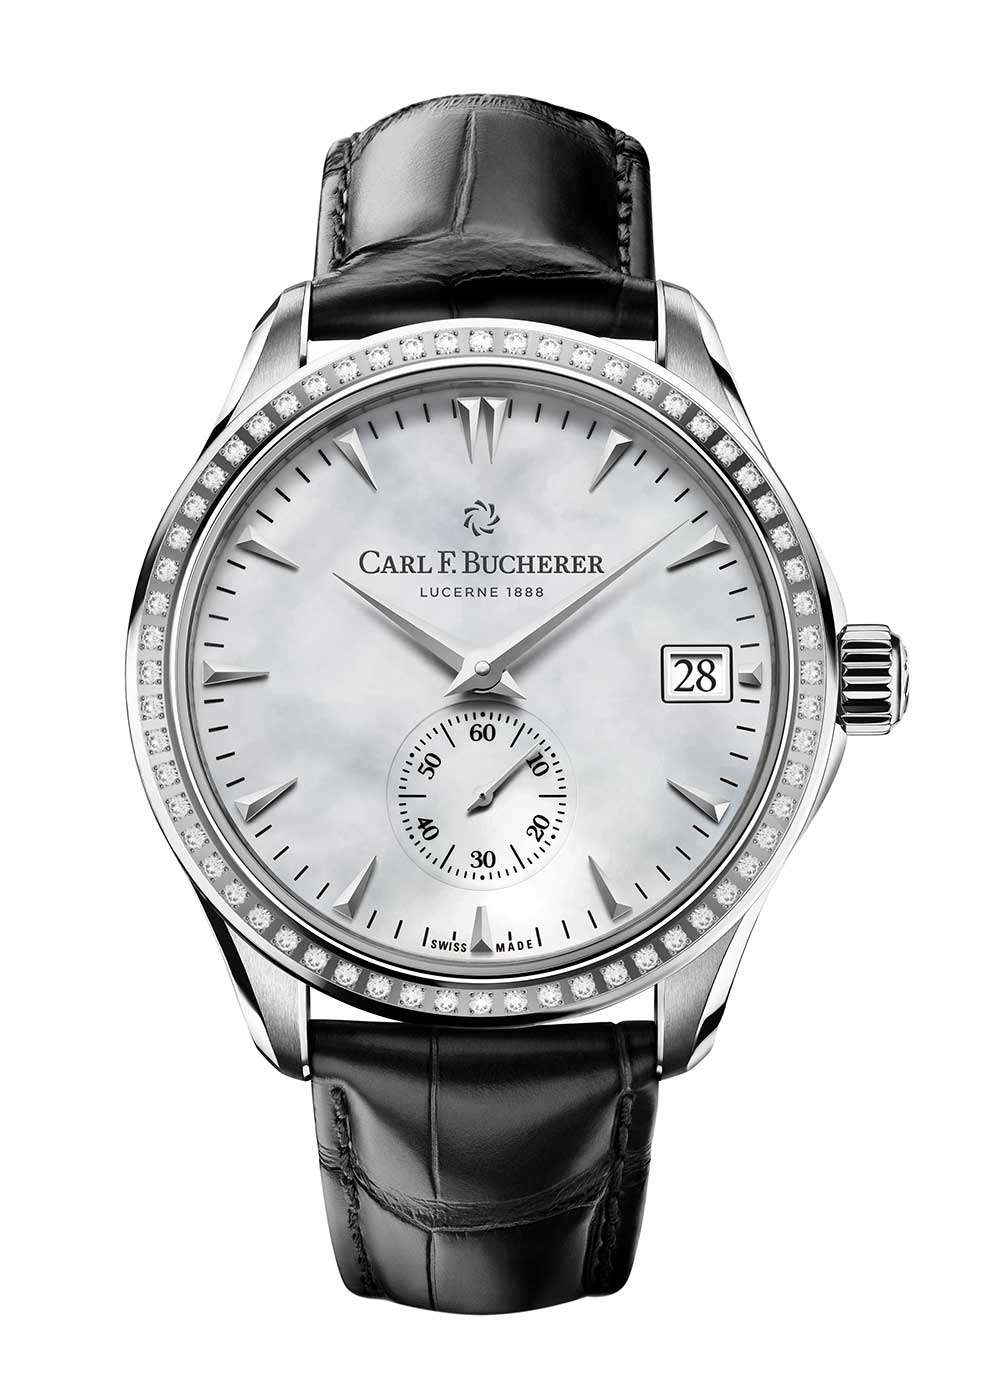 Carl F. Bucherer Manero Peripheral, diamond-set version with white mother-of-pearl dial